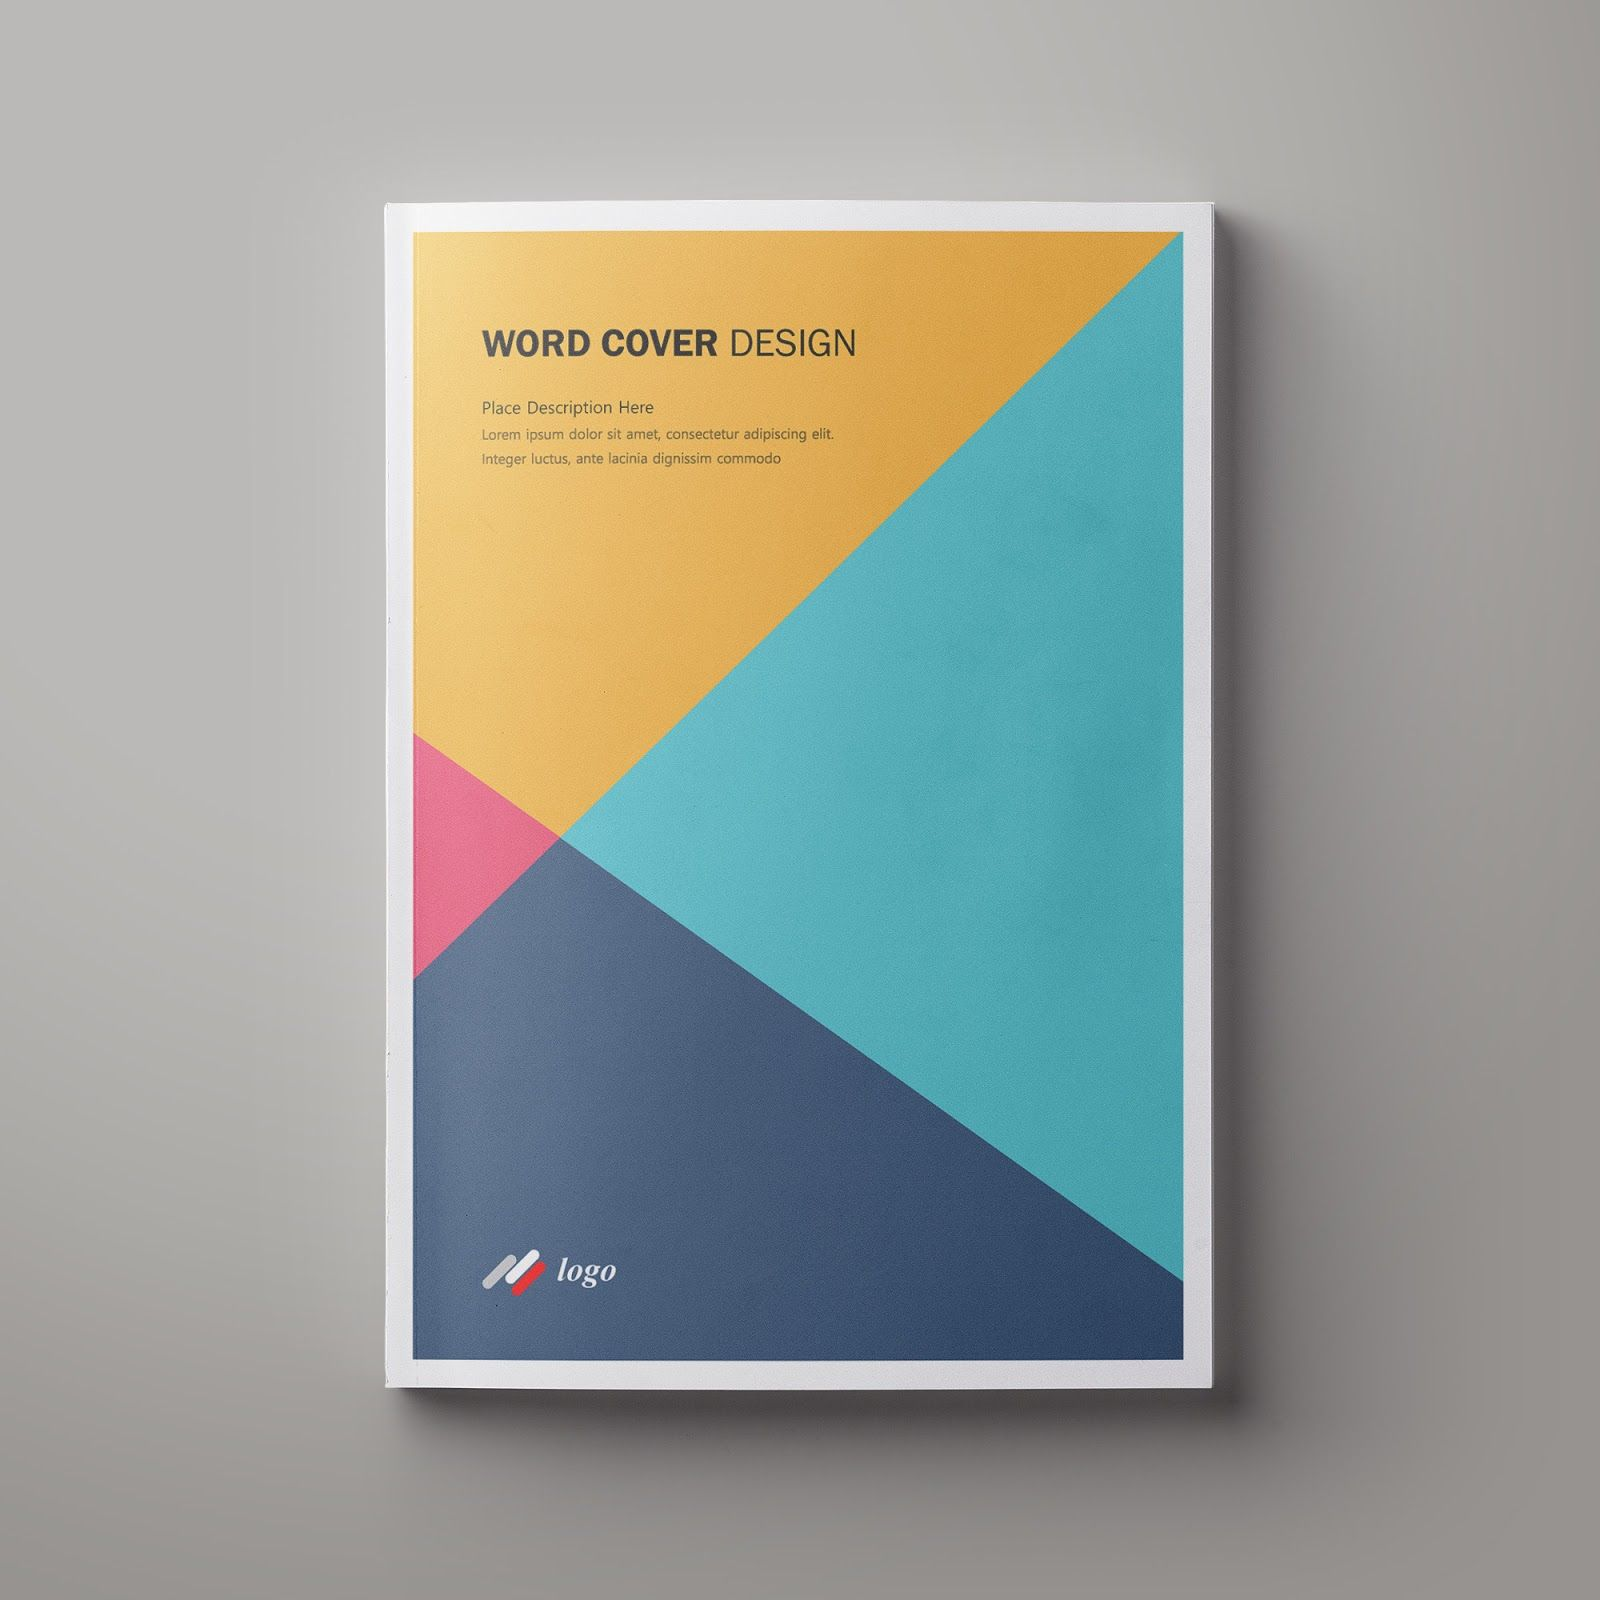 Microsoft Word Cover Templates 17 Free Download Word Free In 2021 Cover Template Indesign Tutorials Book Cover Design Microsoft word book template free